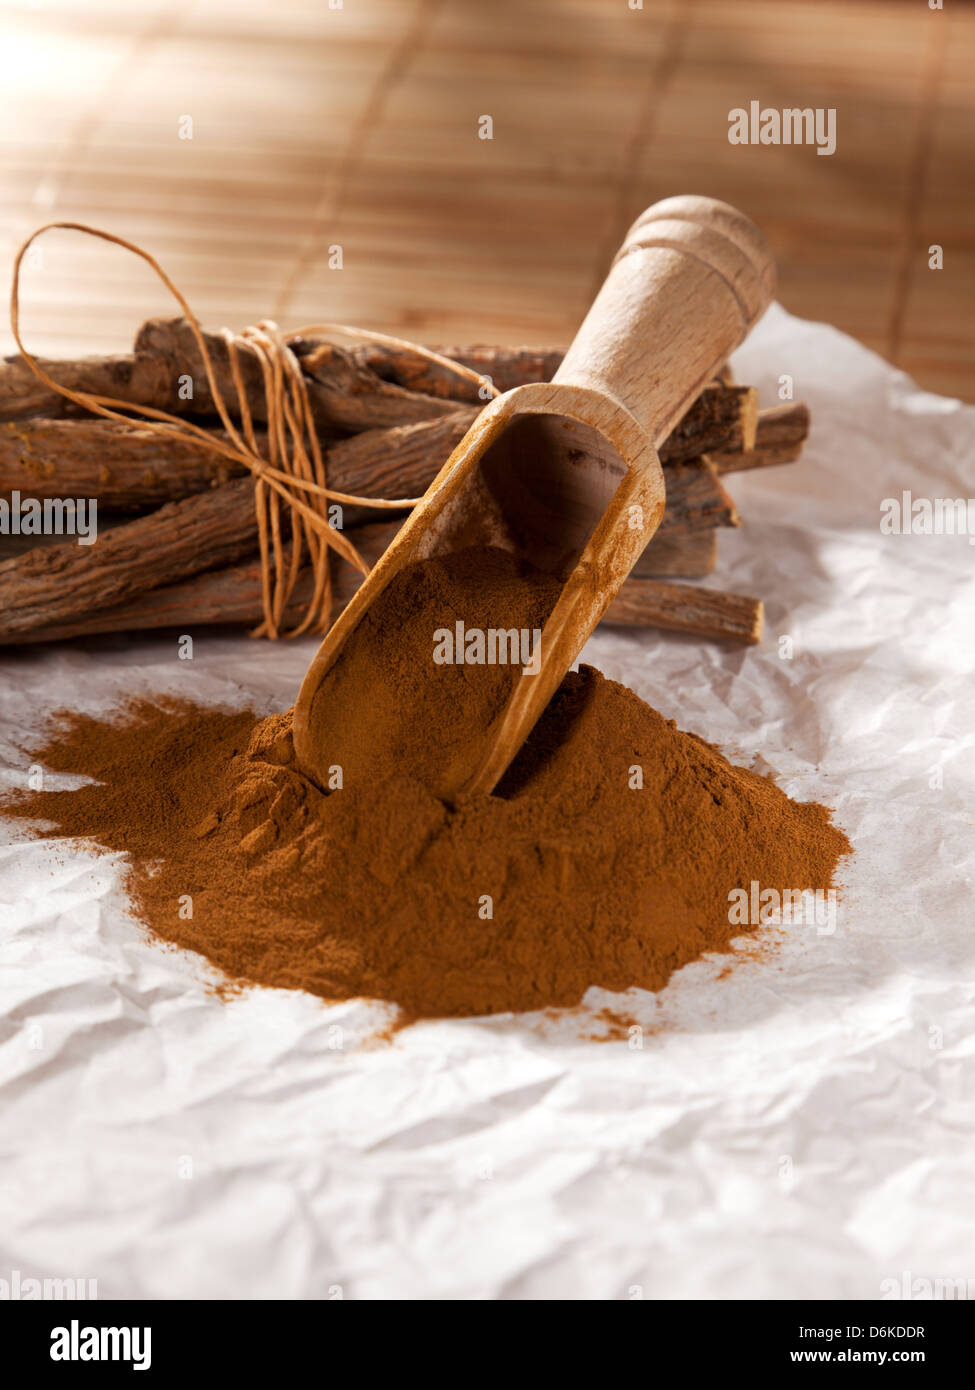 Heap of ground licorice and bundled liquorice roots - Stock Image